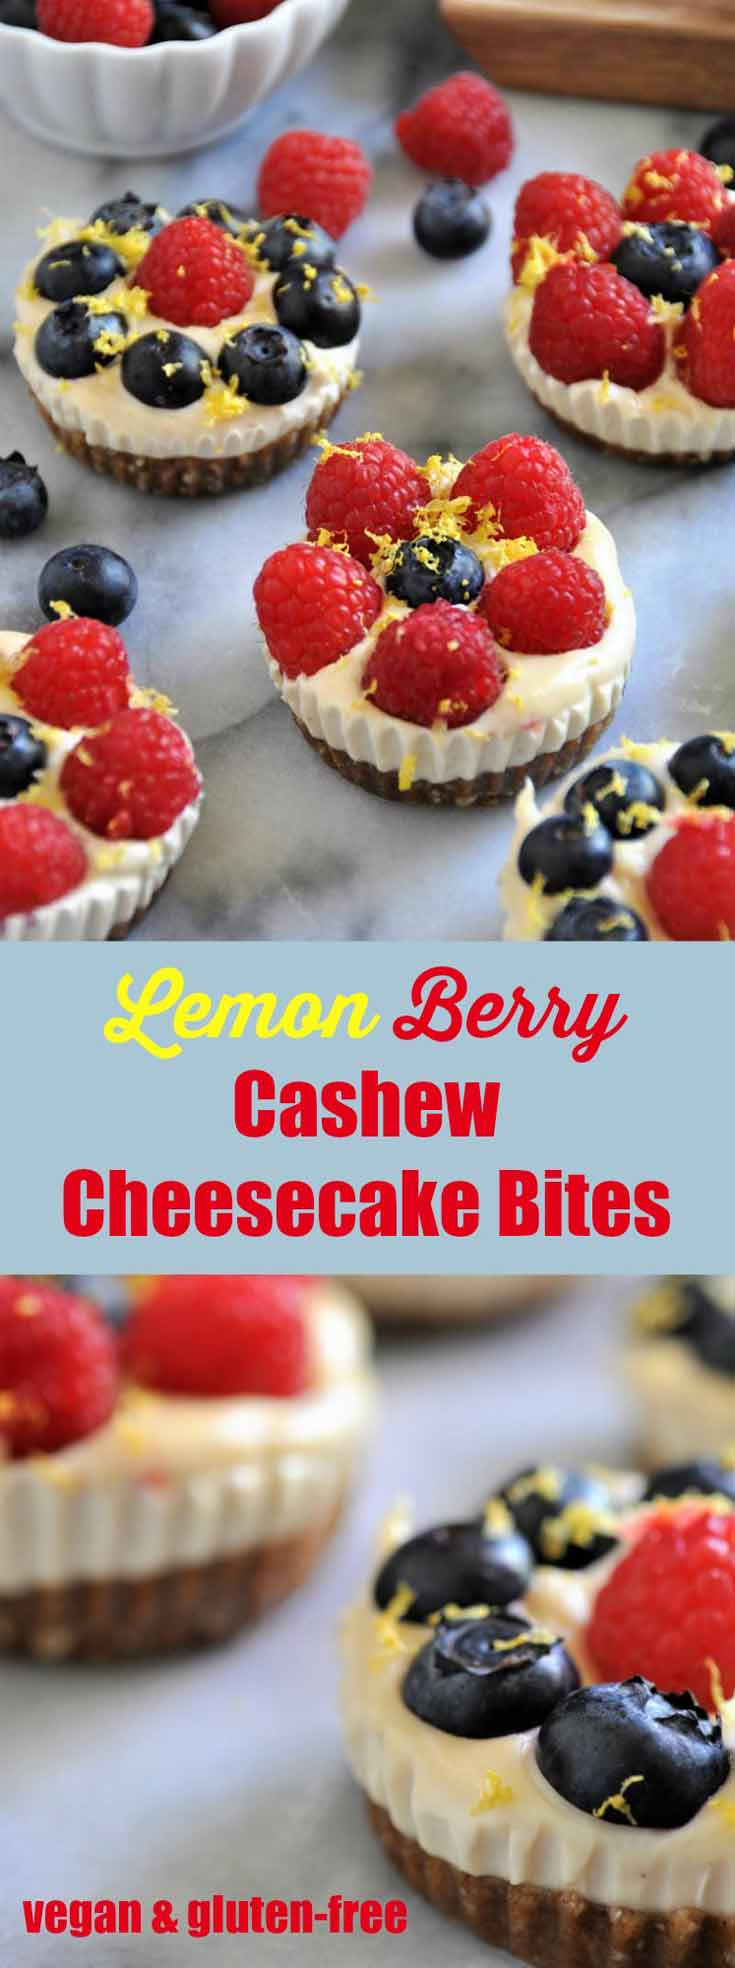 Lemon & Berry Vegan Cheesecake Bites. The perfect dairy-free and gluten-free dessert!